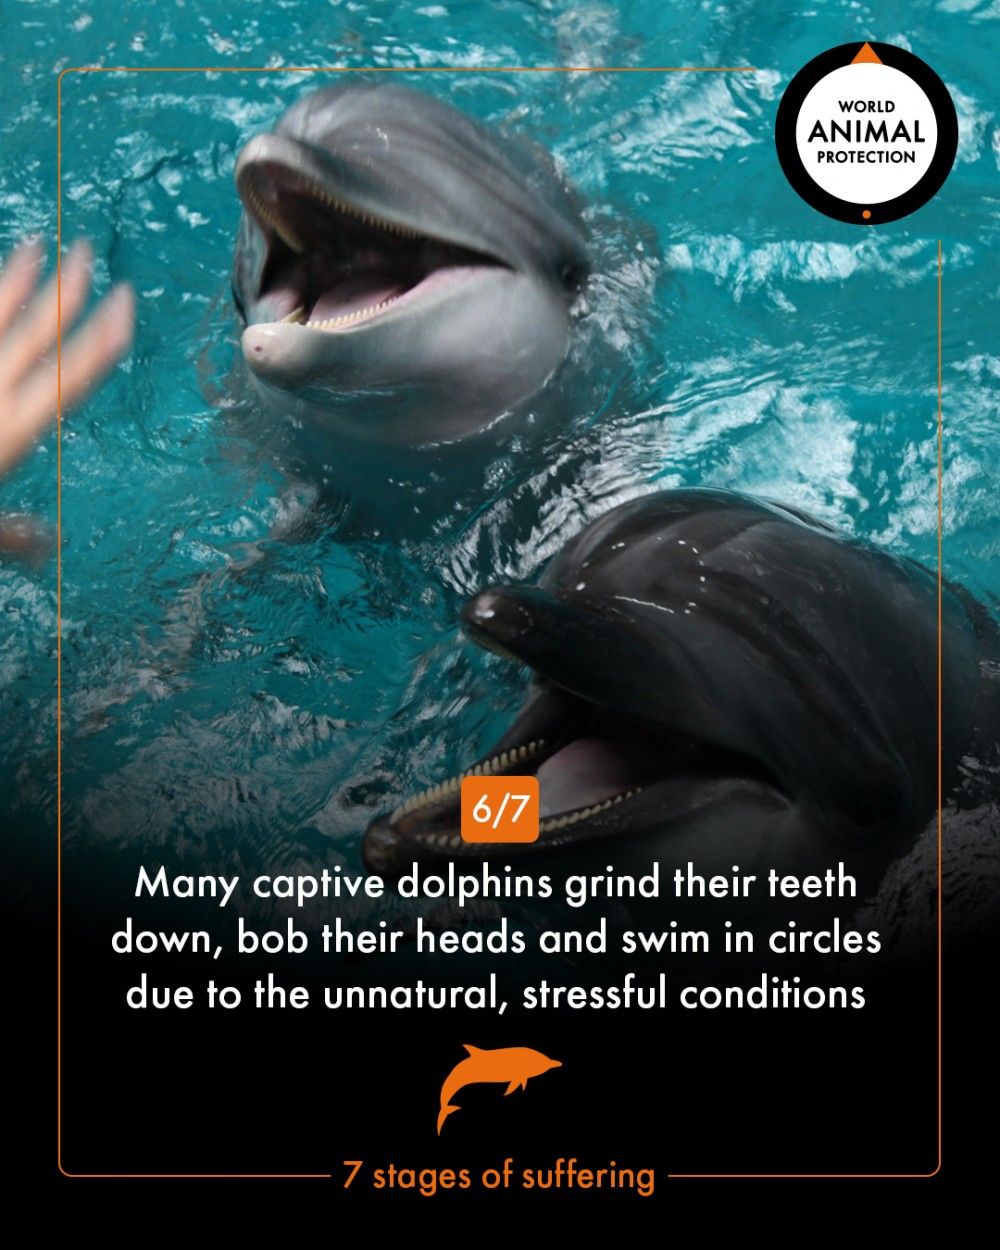 7 stages of dolphin suffering - World Animal Protection